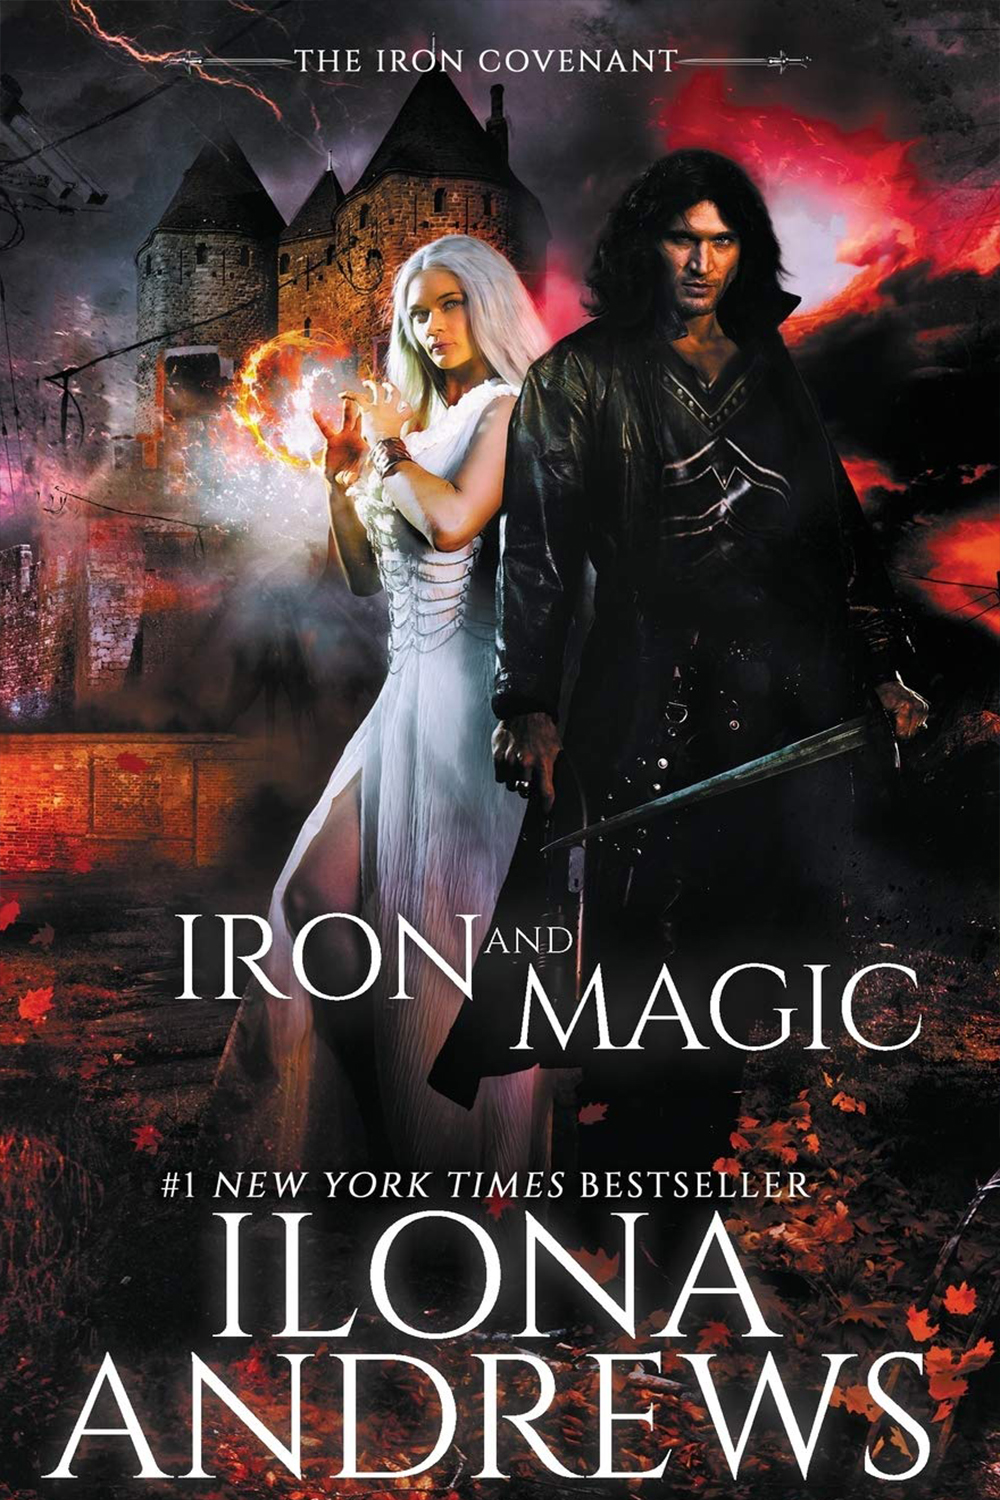 S1 E3 Iron and Magic by Ilona Andrews